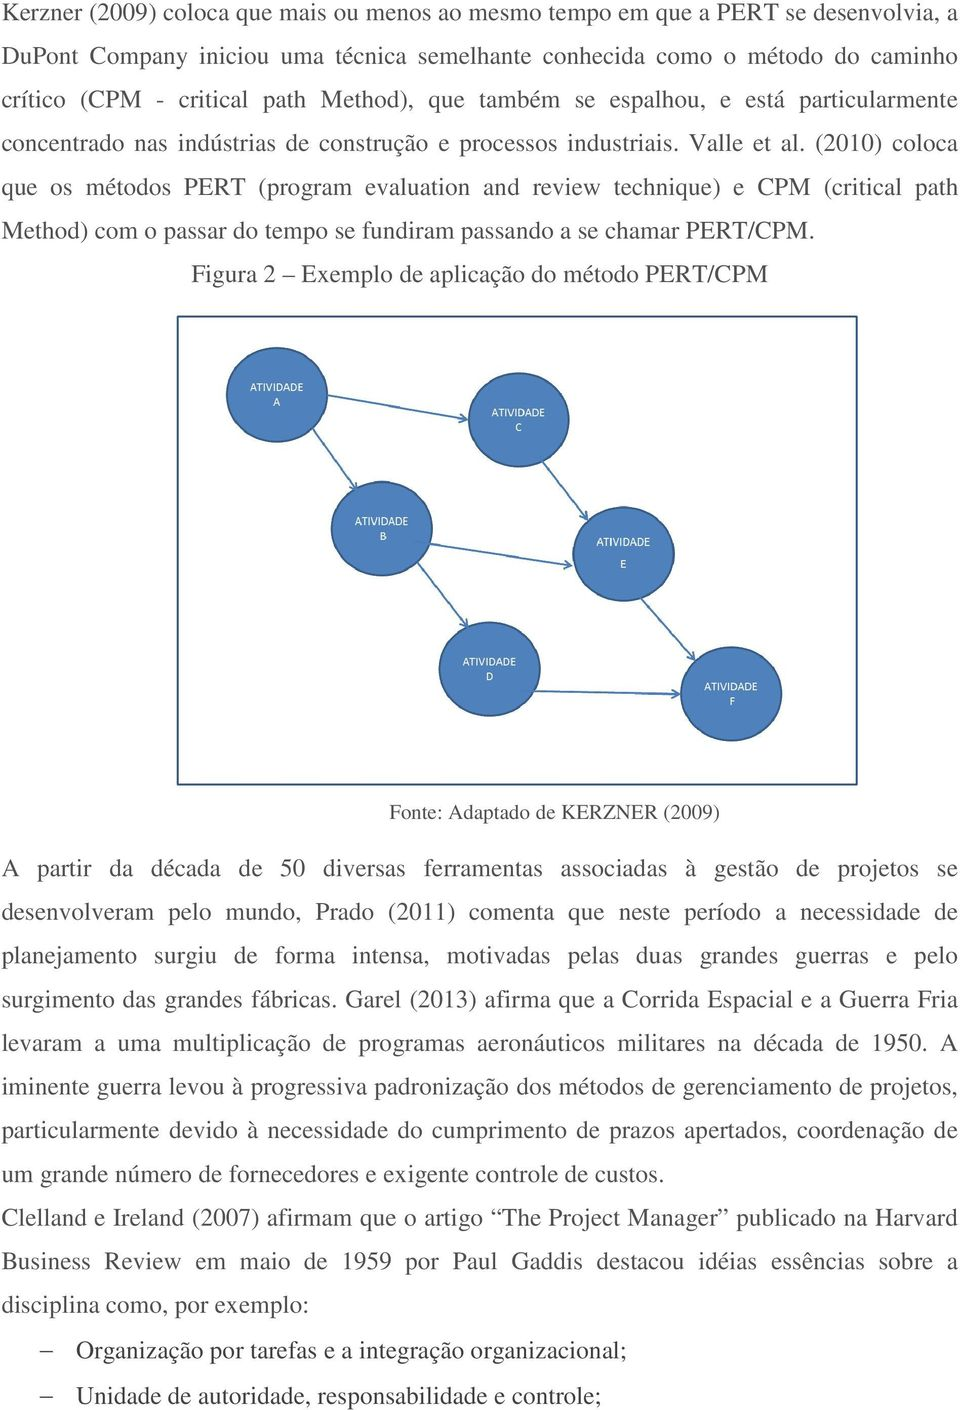 (2010) coloca que os métodos PERT (program evaluation and review technique) e CPM (critical path Method) com o passar do tempo se fundiram passando a se chamar PERT/CPM.